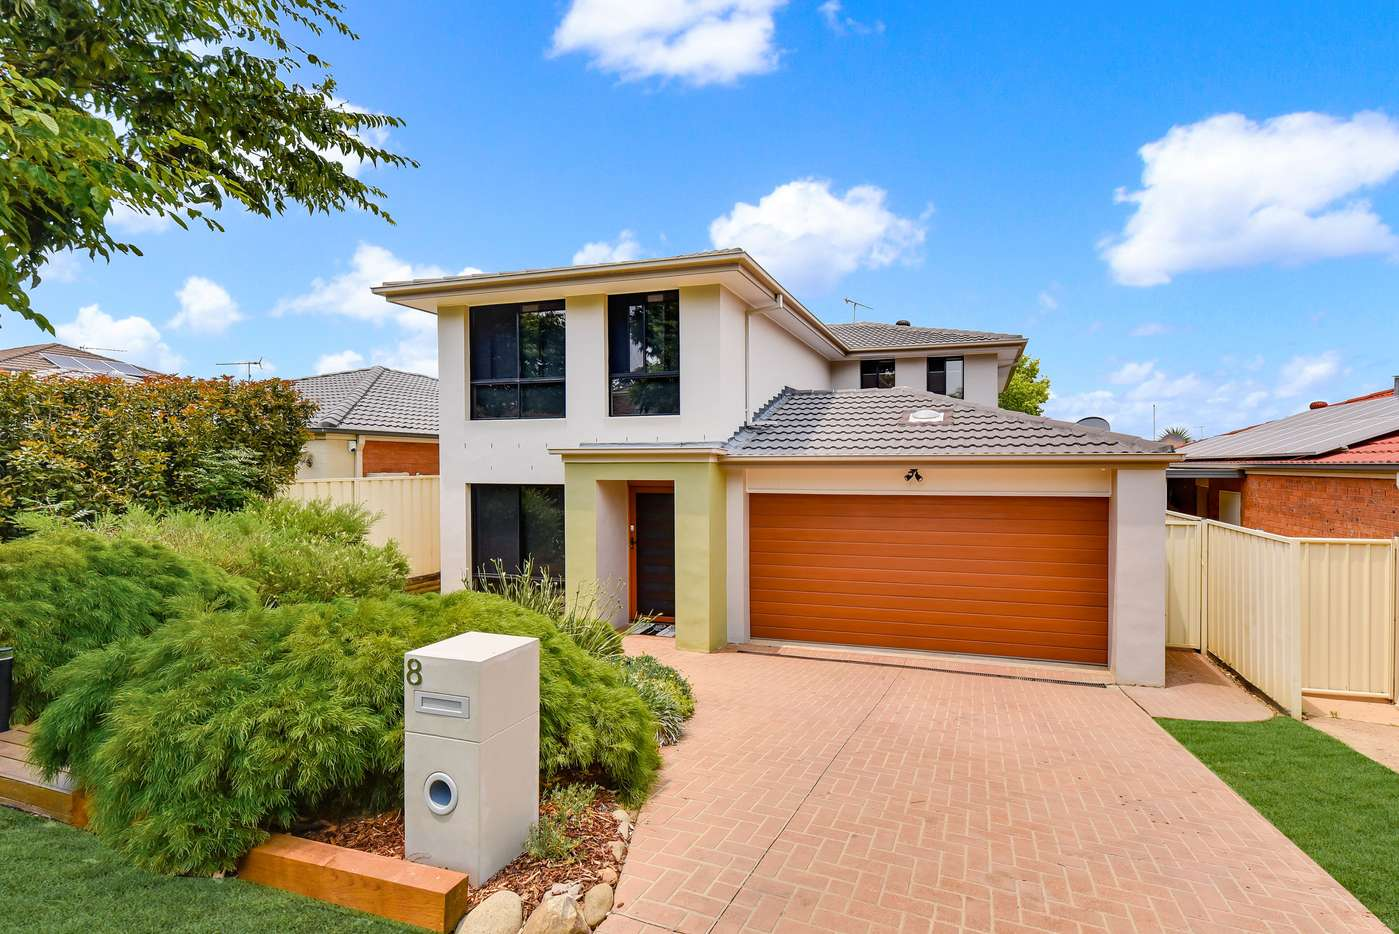 Main view of Homely house listing, 8 Mannix Court, Harrington Park, NSW 2567